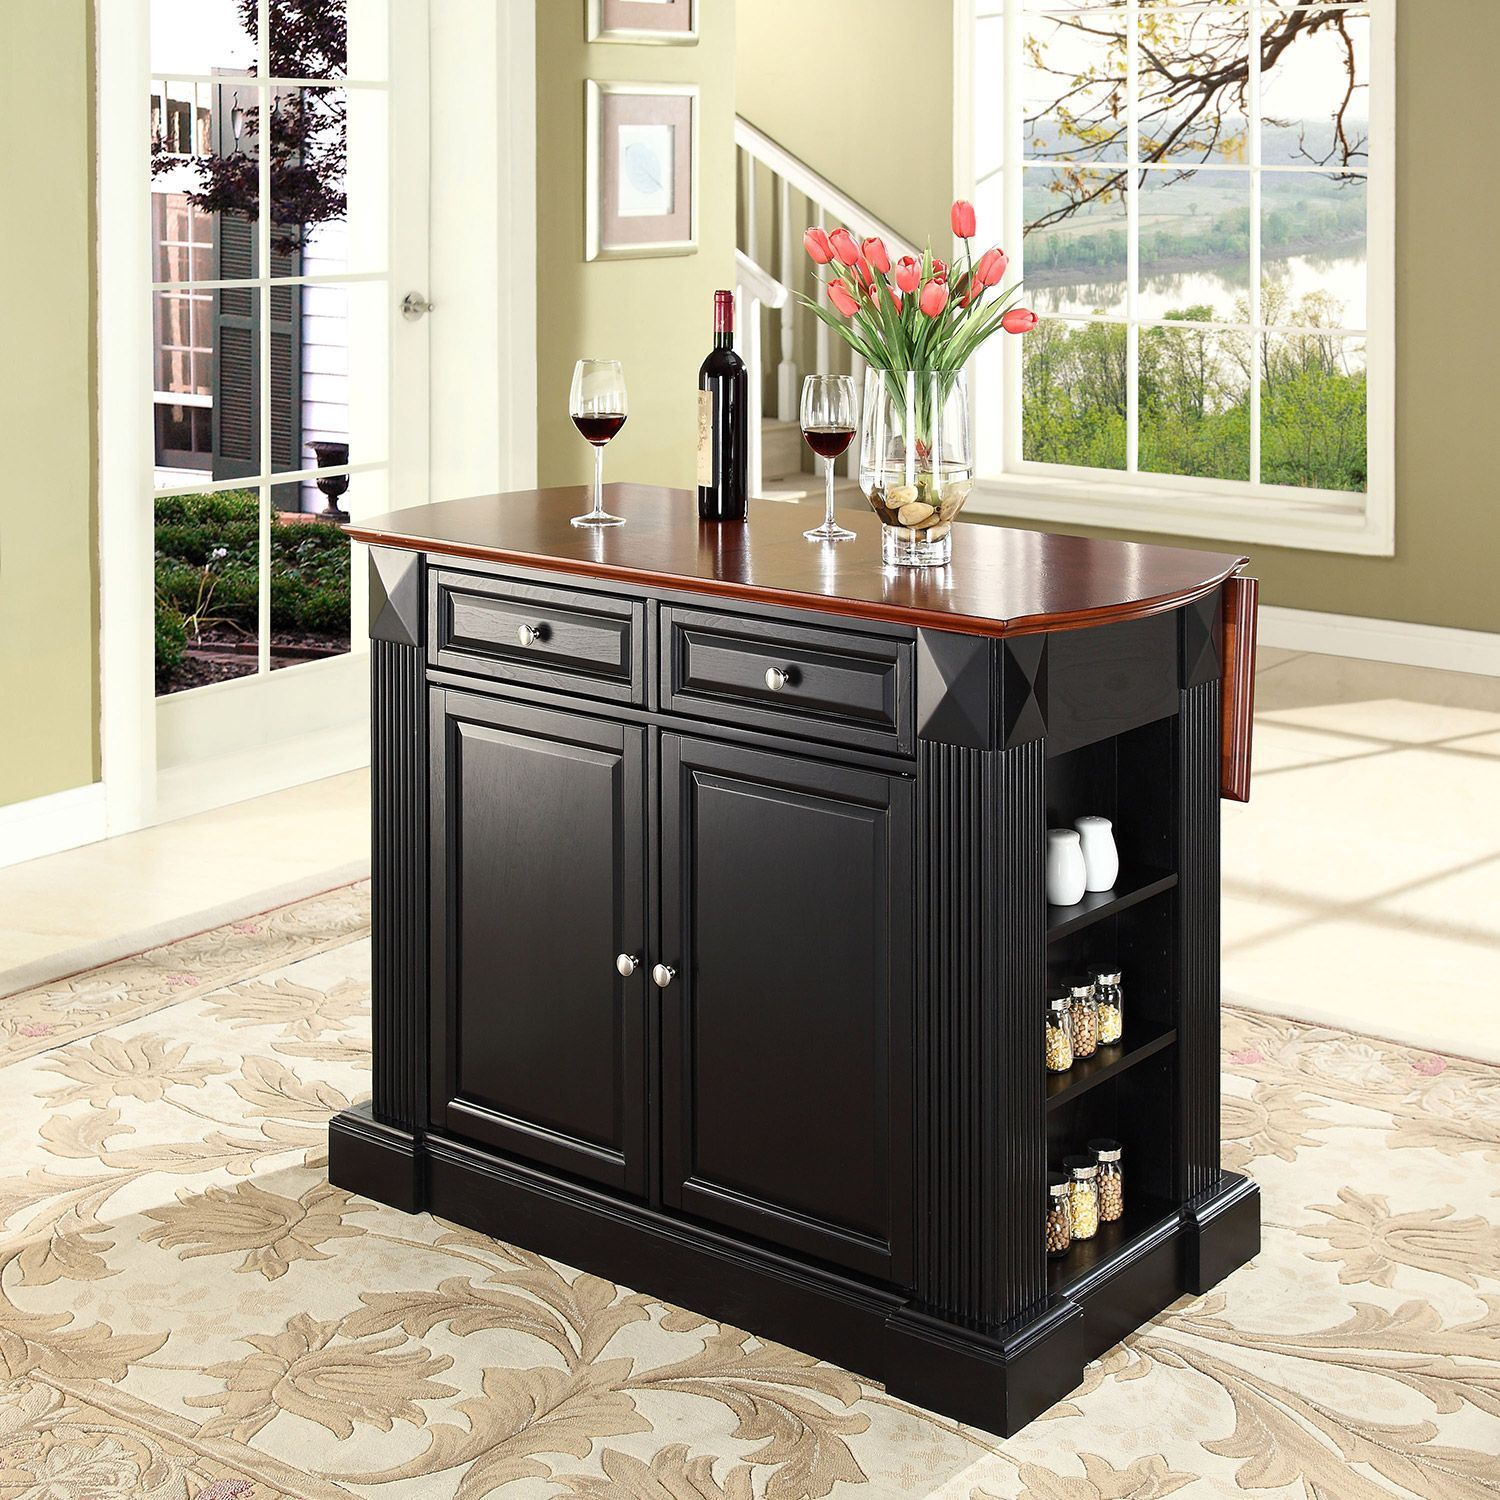 Picture of Drop Leaf Breakfast Kitchen Cart, Black *D